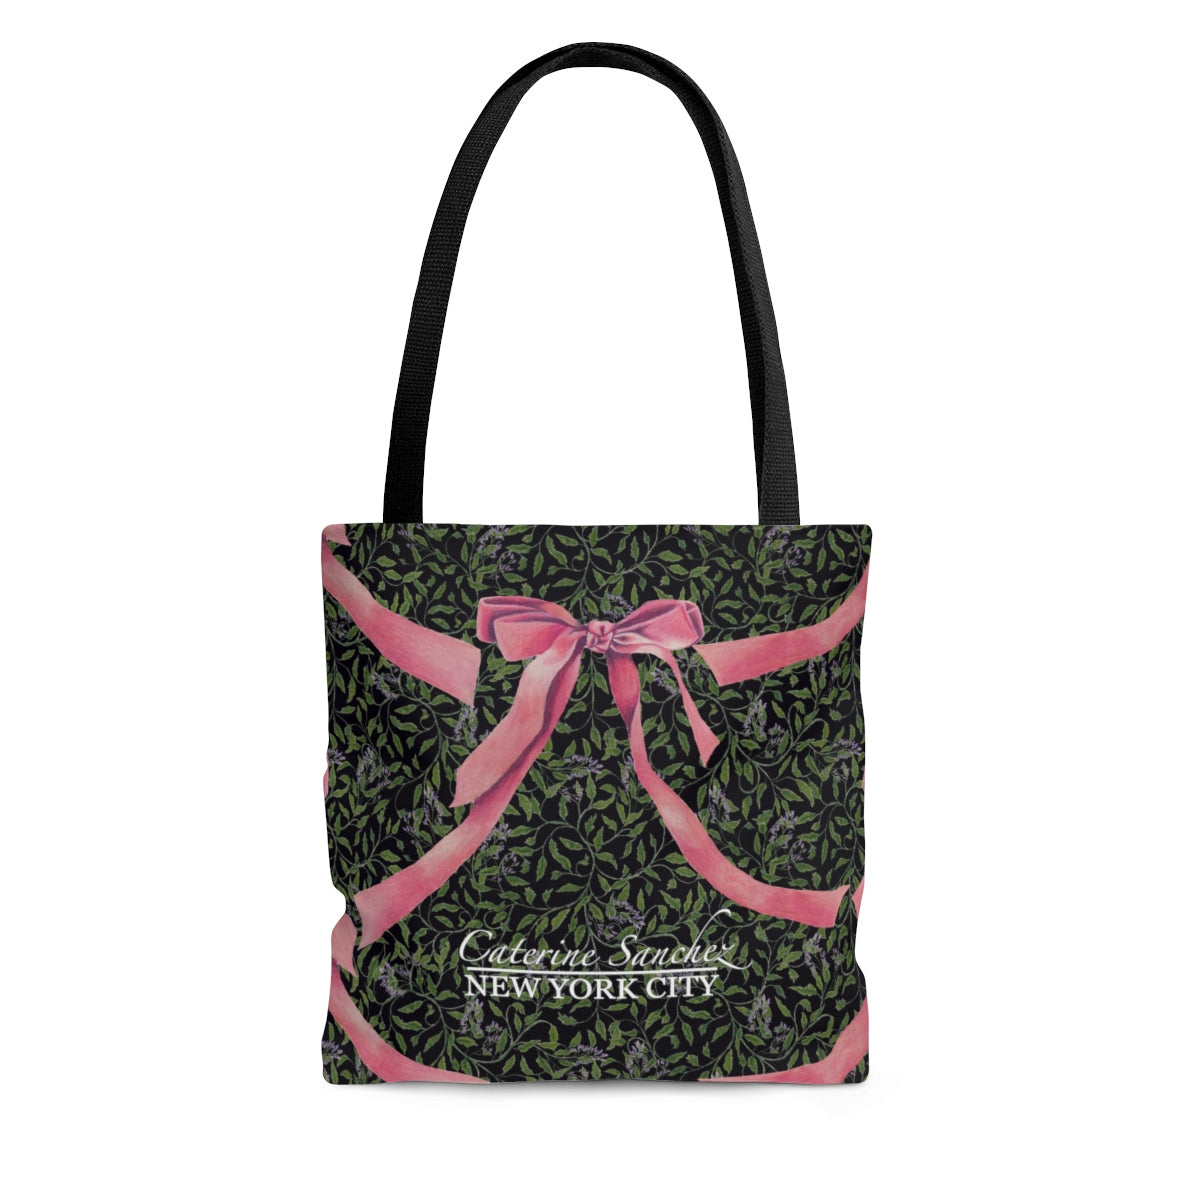 Enchanting Ribbons in Midnight Meadows Tote Bag